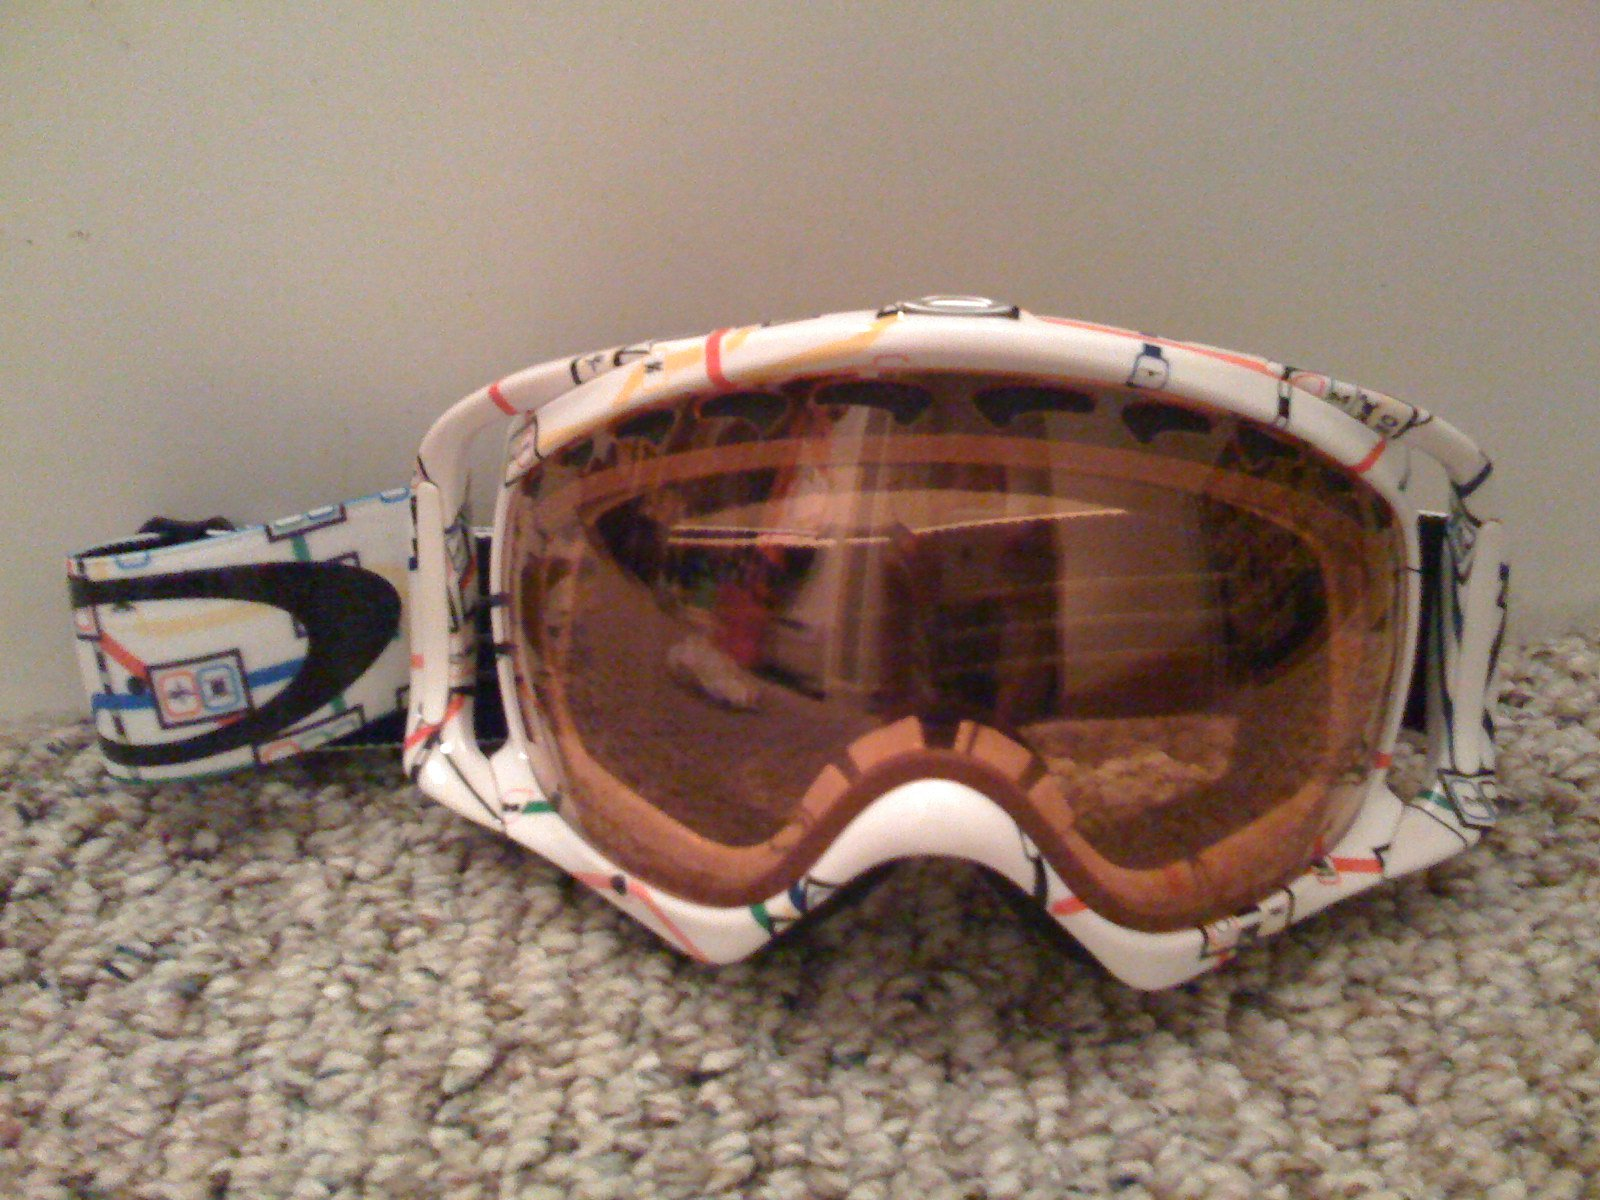 My new goggles